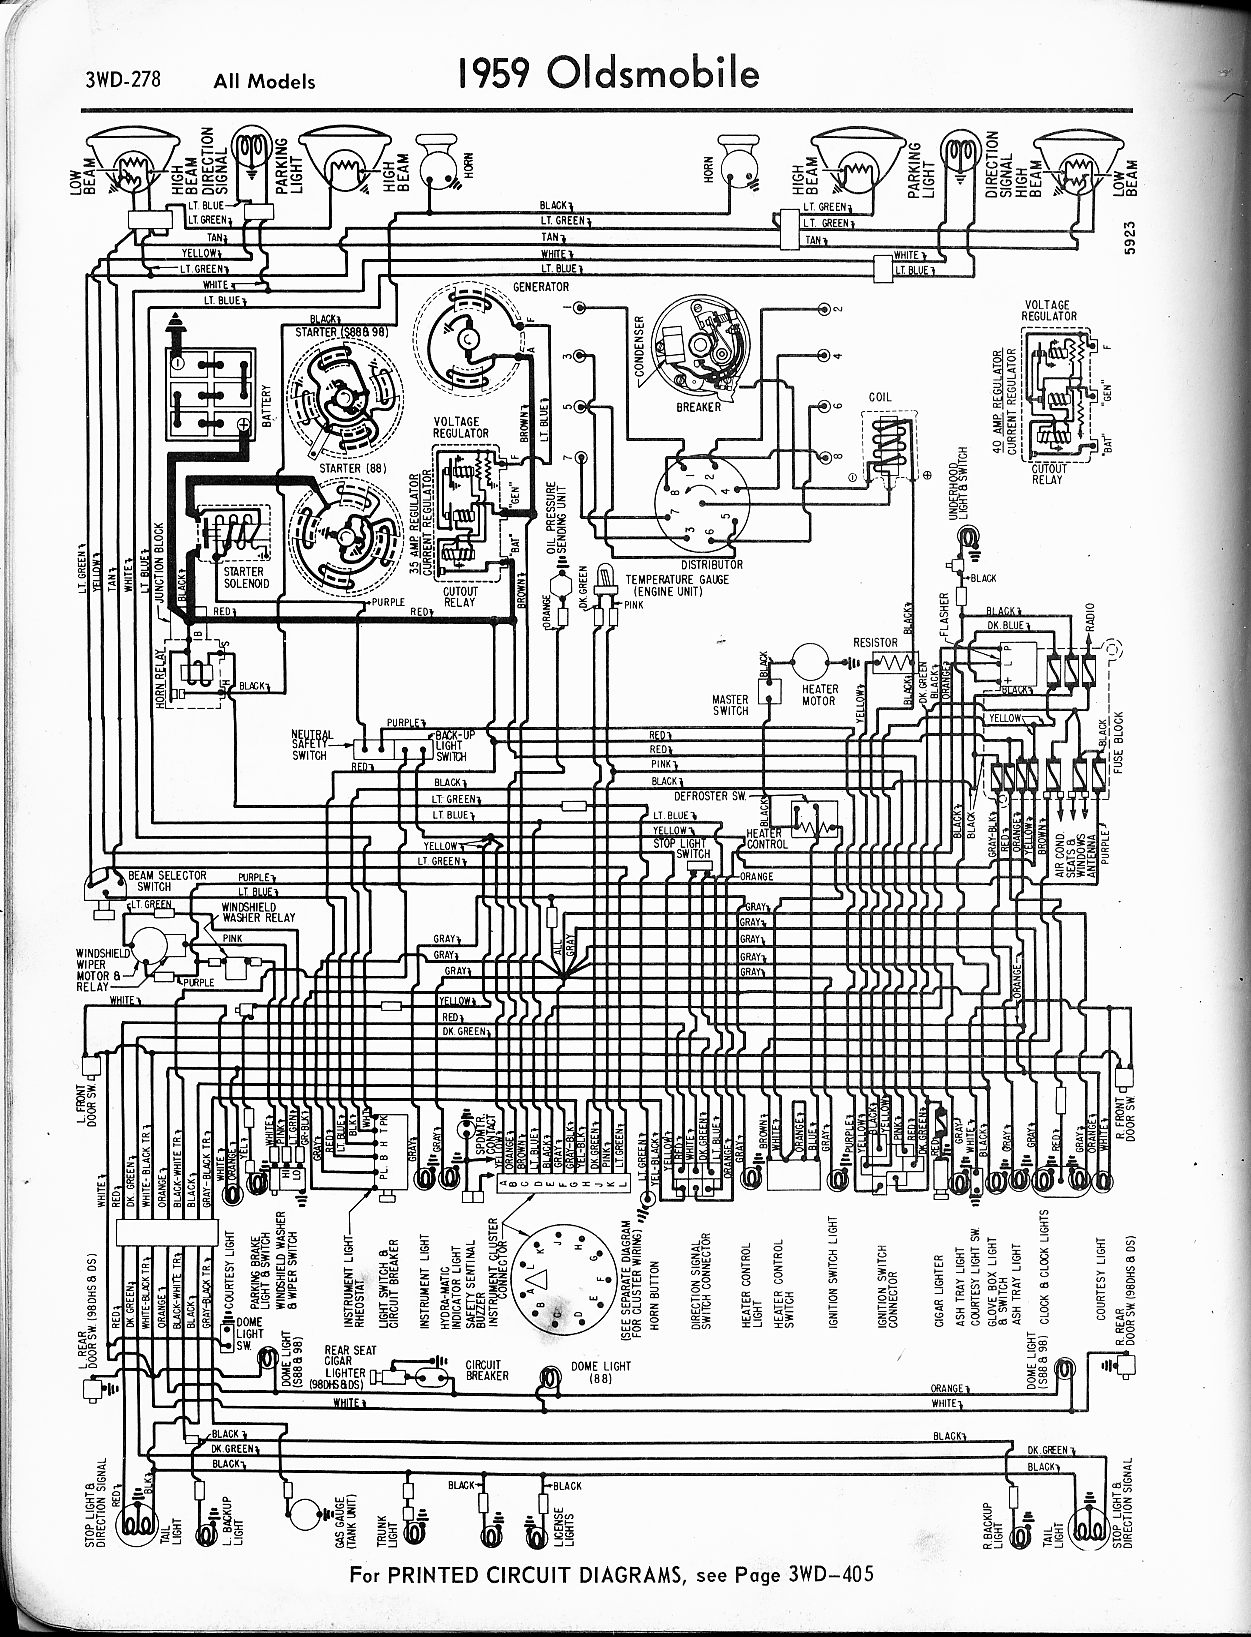 Oldsmobile Wiring Diagrams The Old Car Manual Project - Wiring Diagram